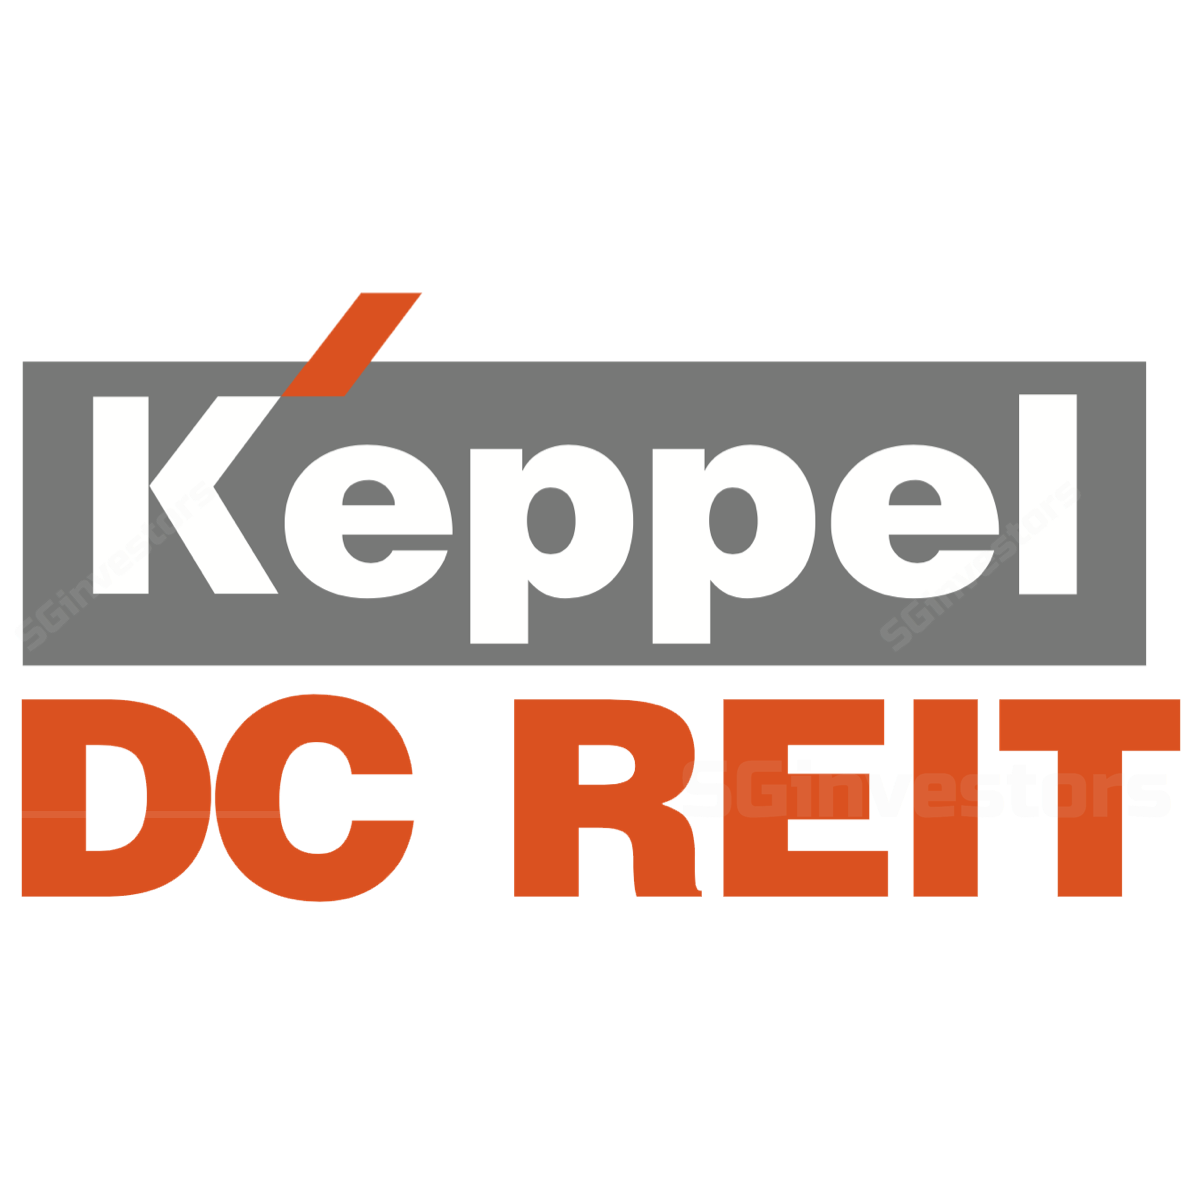 Keppel DC REIT - OCBC Investment 2018-01-23: LIMITED UPSIDE FROM HERE